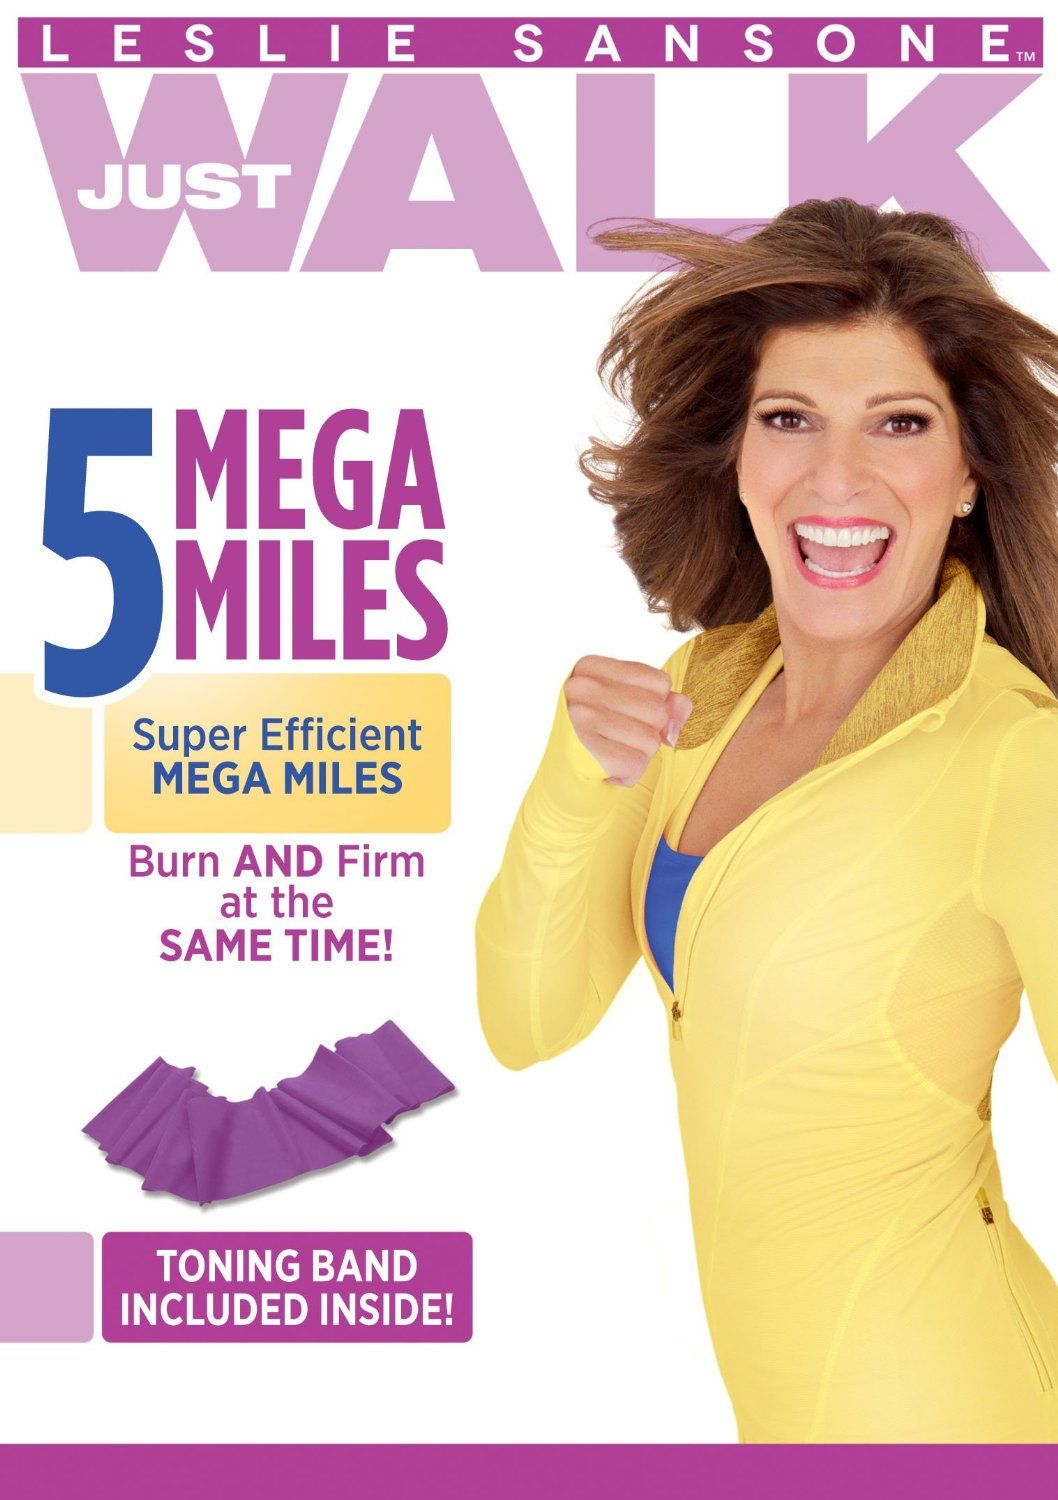 Leslie sansone 5 mega miles with toning band the review stew best workout dvdsworkout